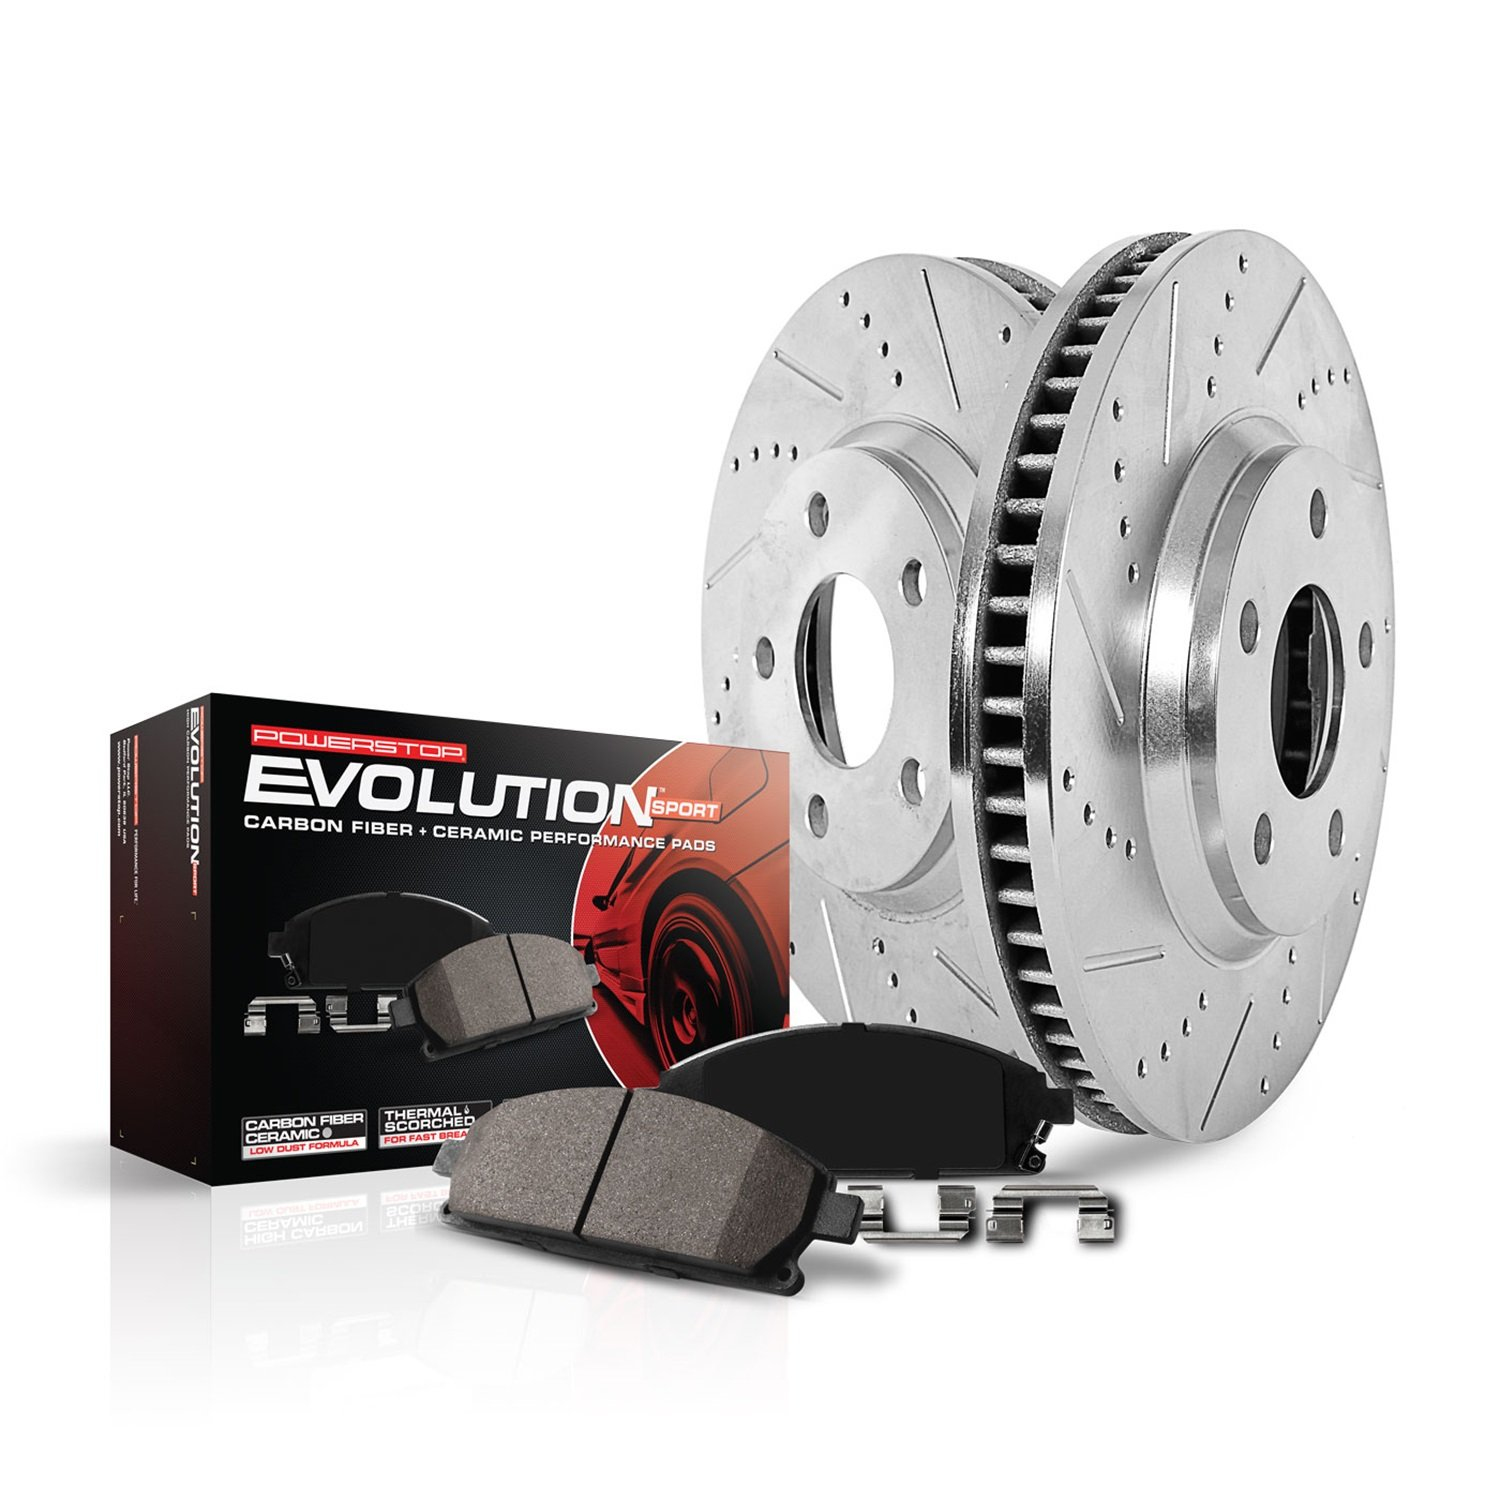 Power Stop K6750 Front Z23 Evolution Brake Kit (with Drilled/Slotted Rotors and Ceramic Brake Pads) by Power Stop